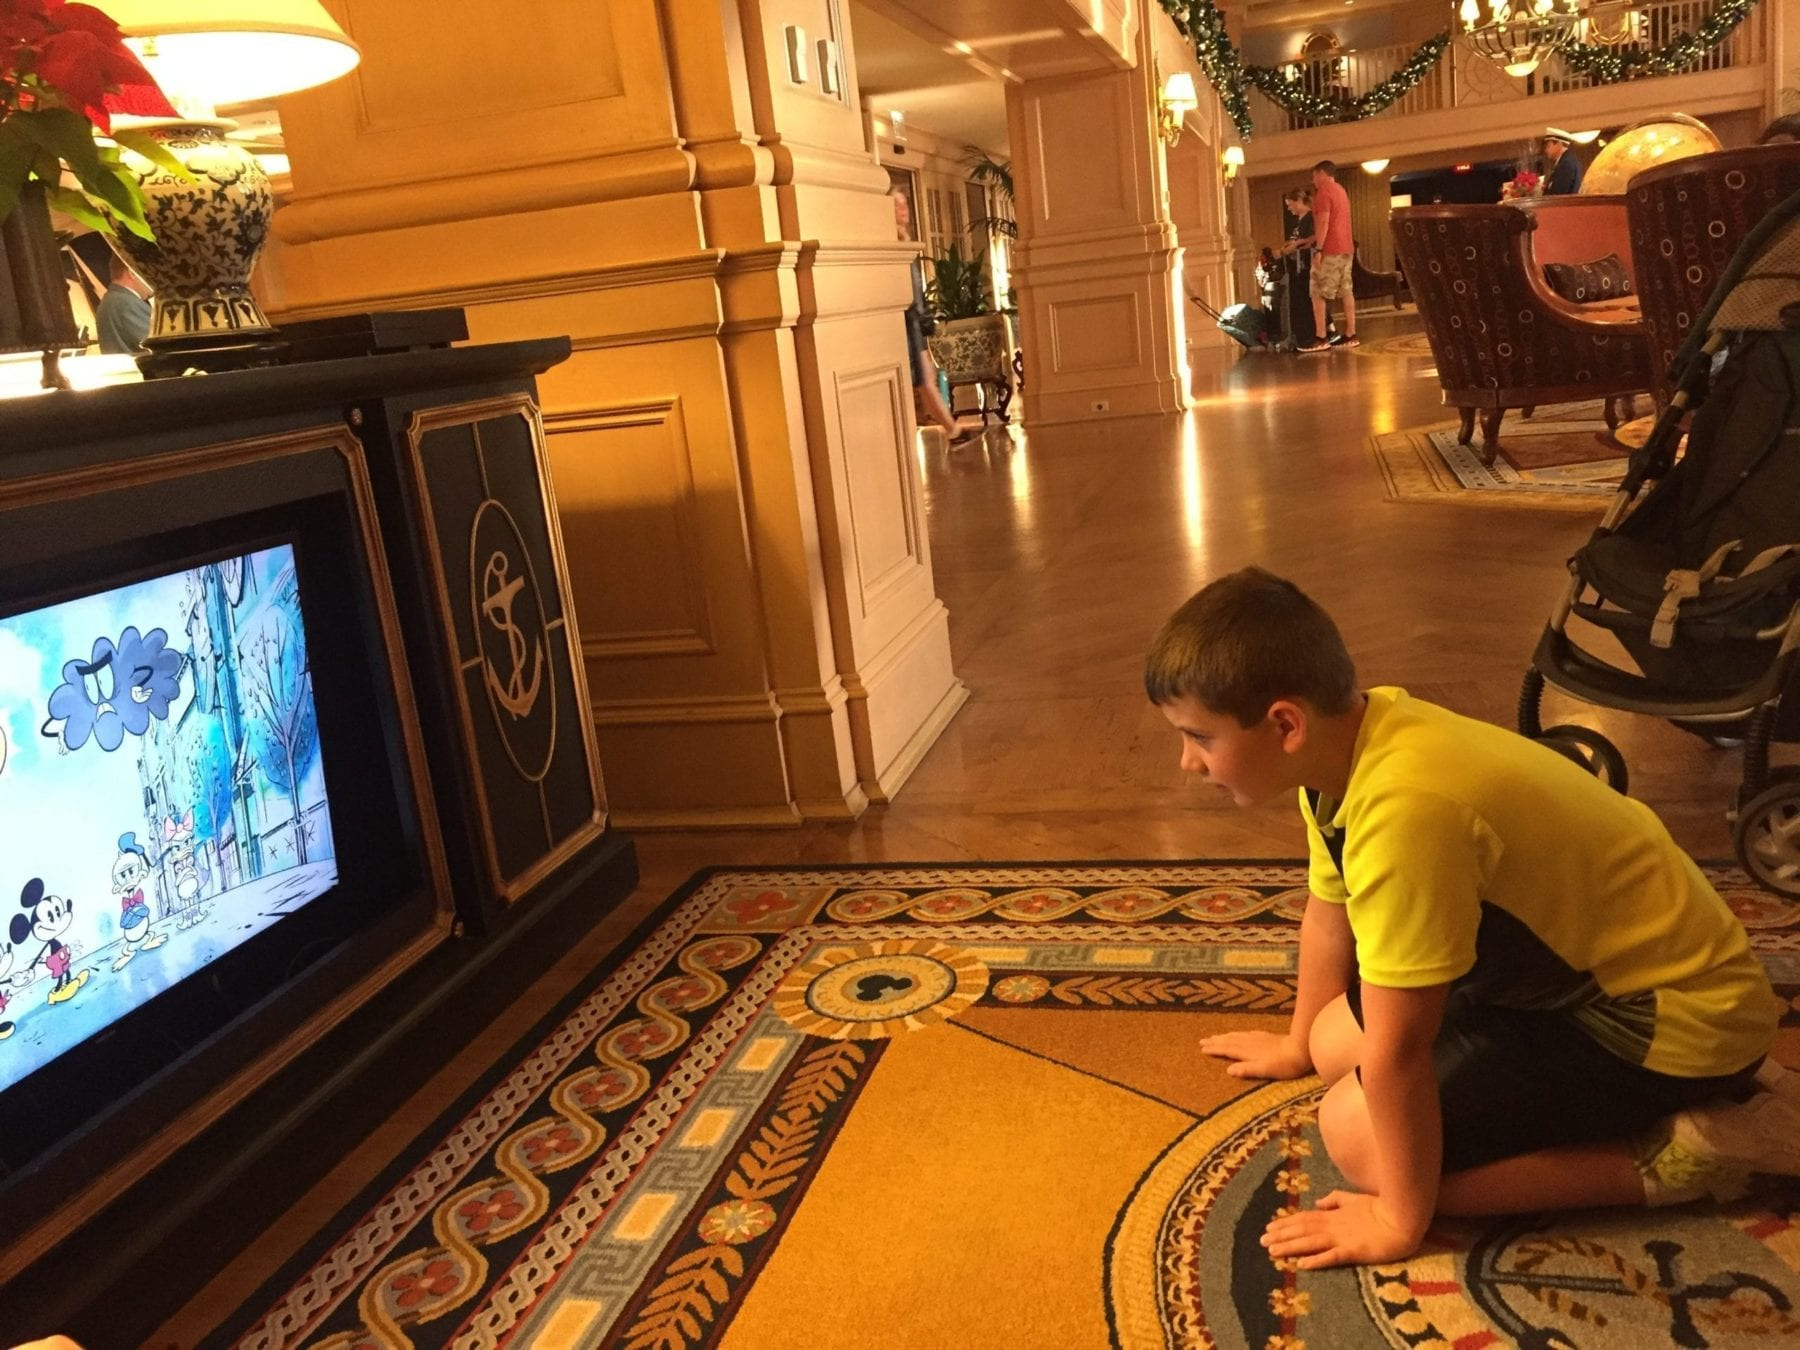 Watching TV at Disney Resort